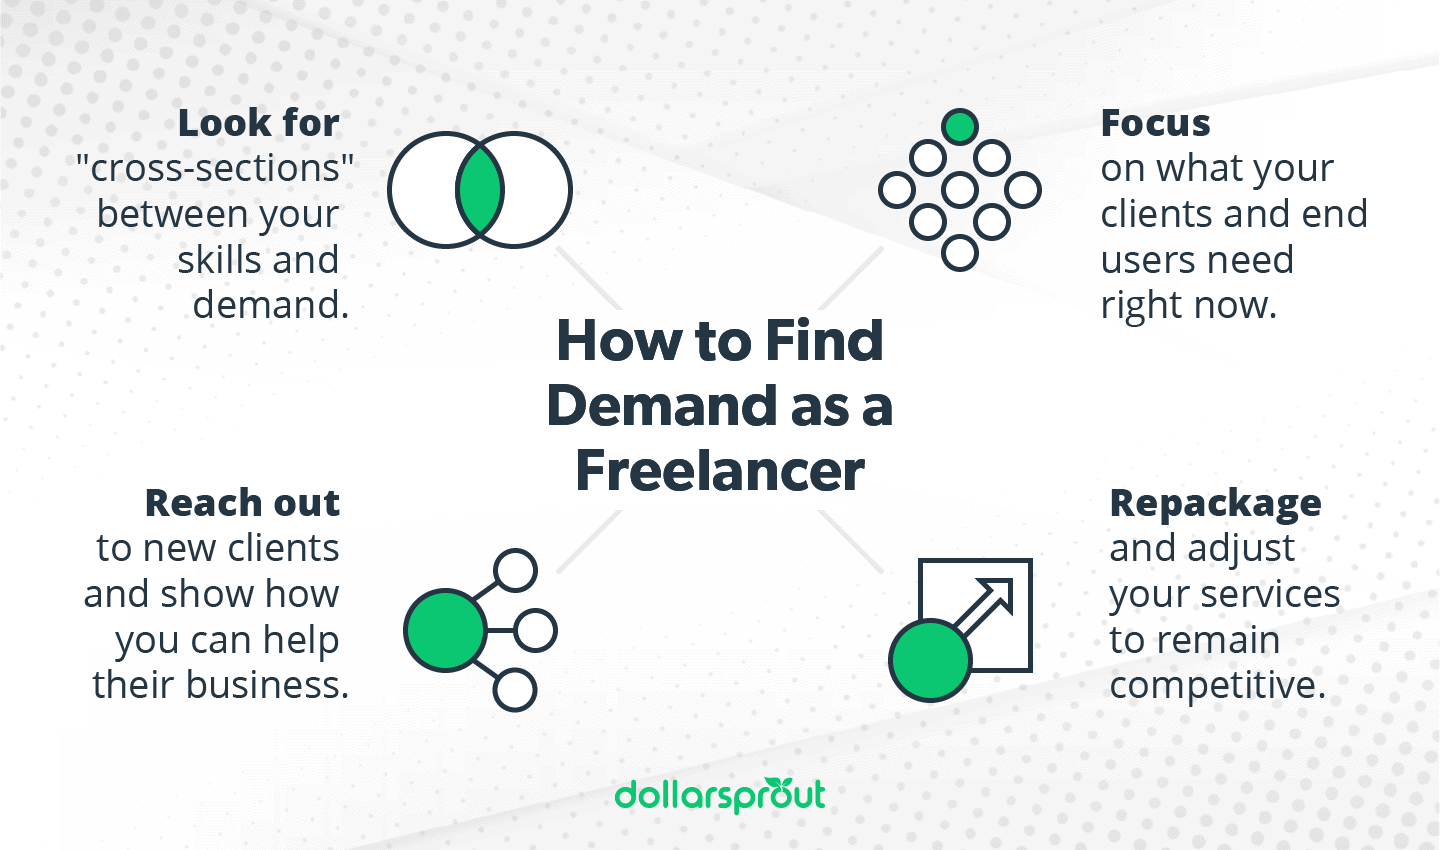 How to Find Demand as a Freelancer